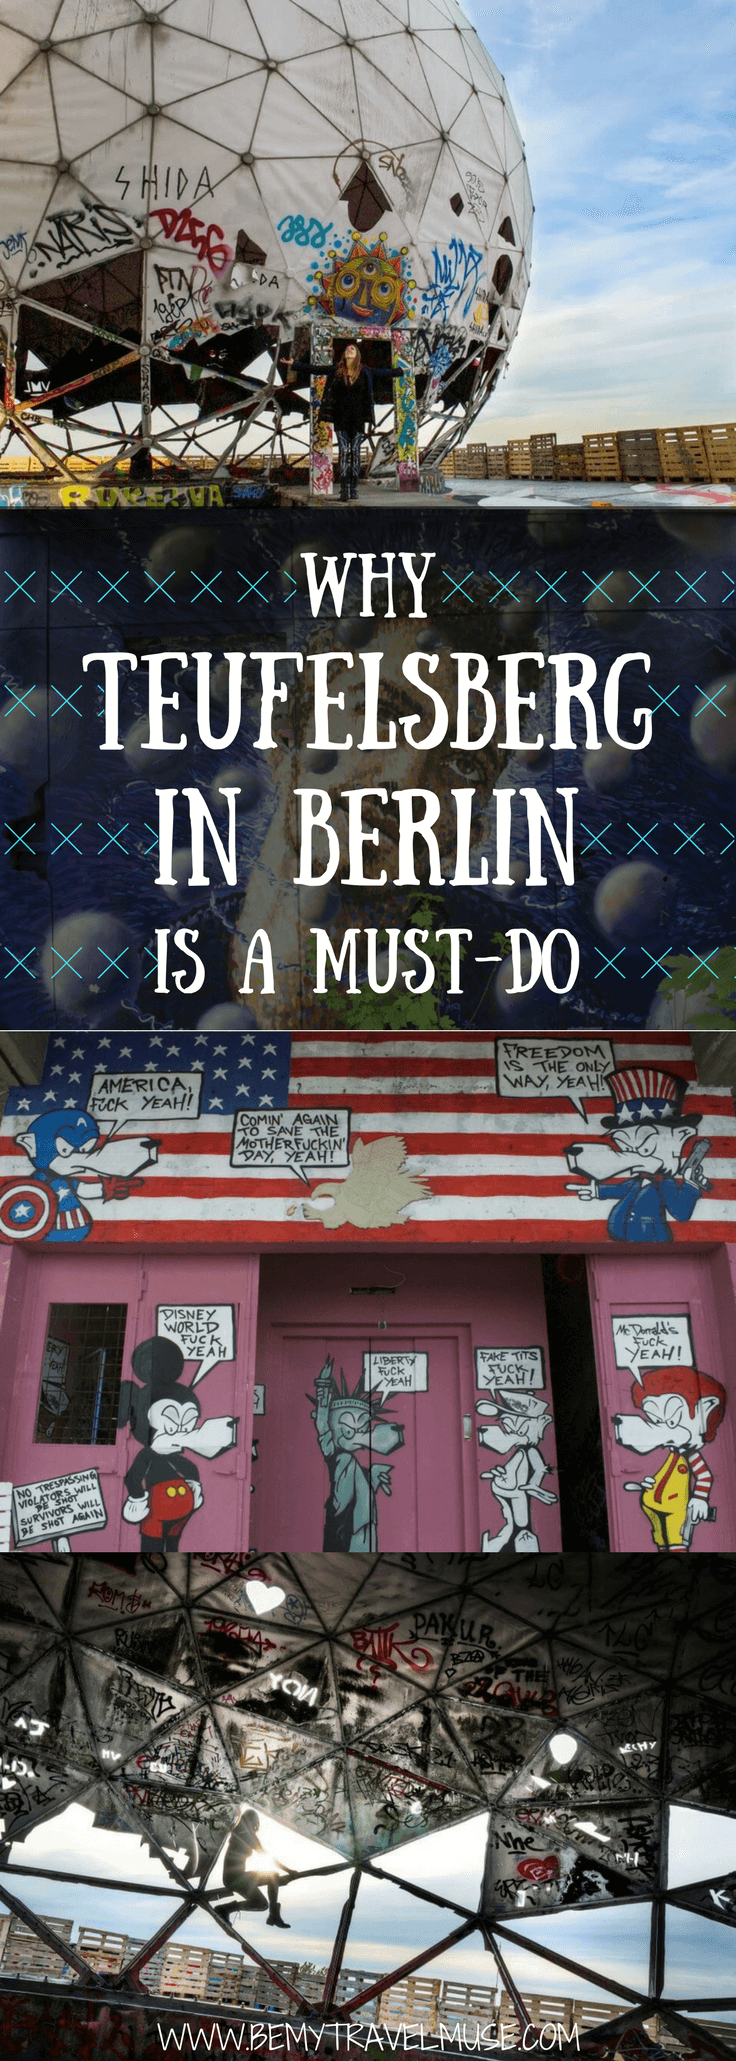 Devil's Mountain, or Teufelsberg, is a must-do when you visit Berlin. It's a bit of a trek, but the view and the insane amount of graffiti will blow you away | Be My Travel Muse #Teufelsberg #BerlinTravelGuide